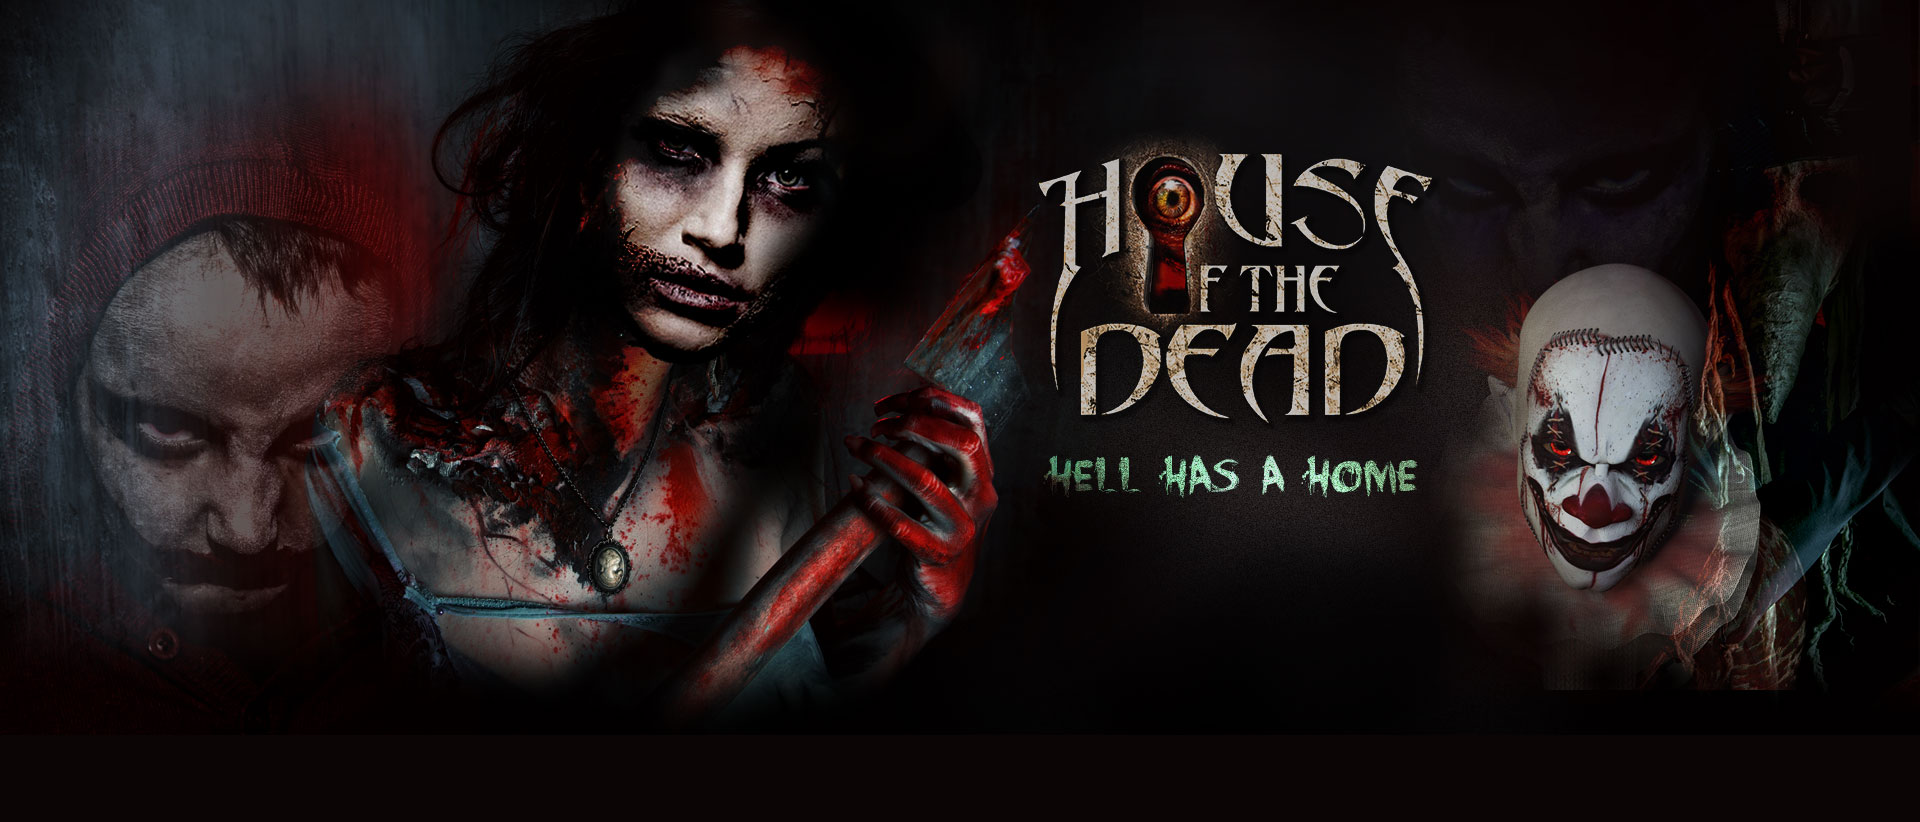 House of the Dead opens it's deathly doors in Manchester